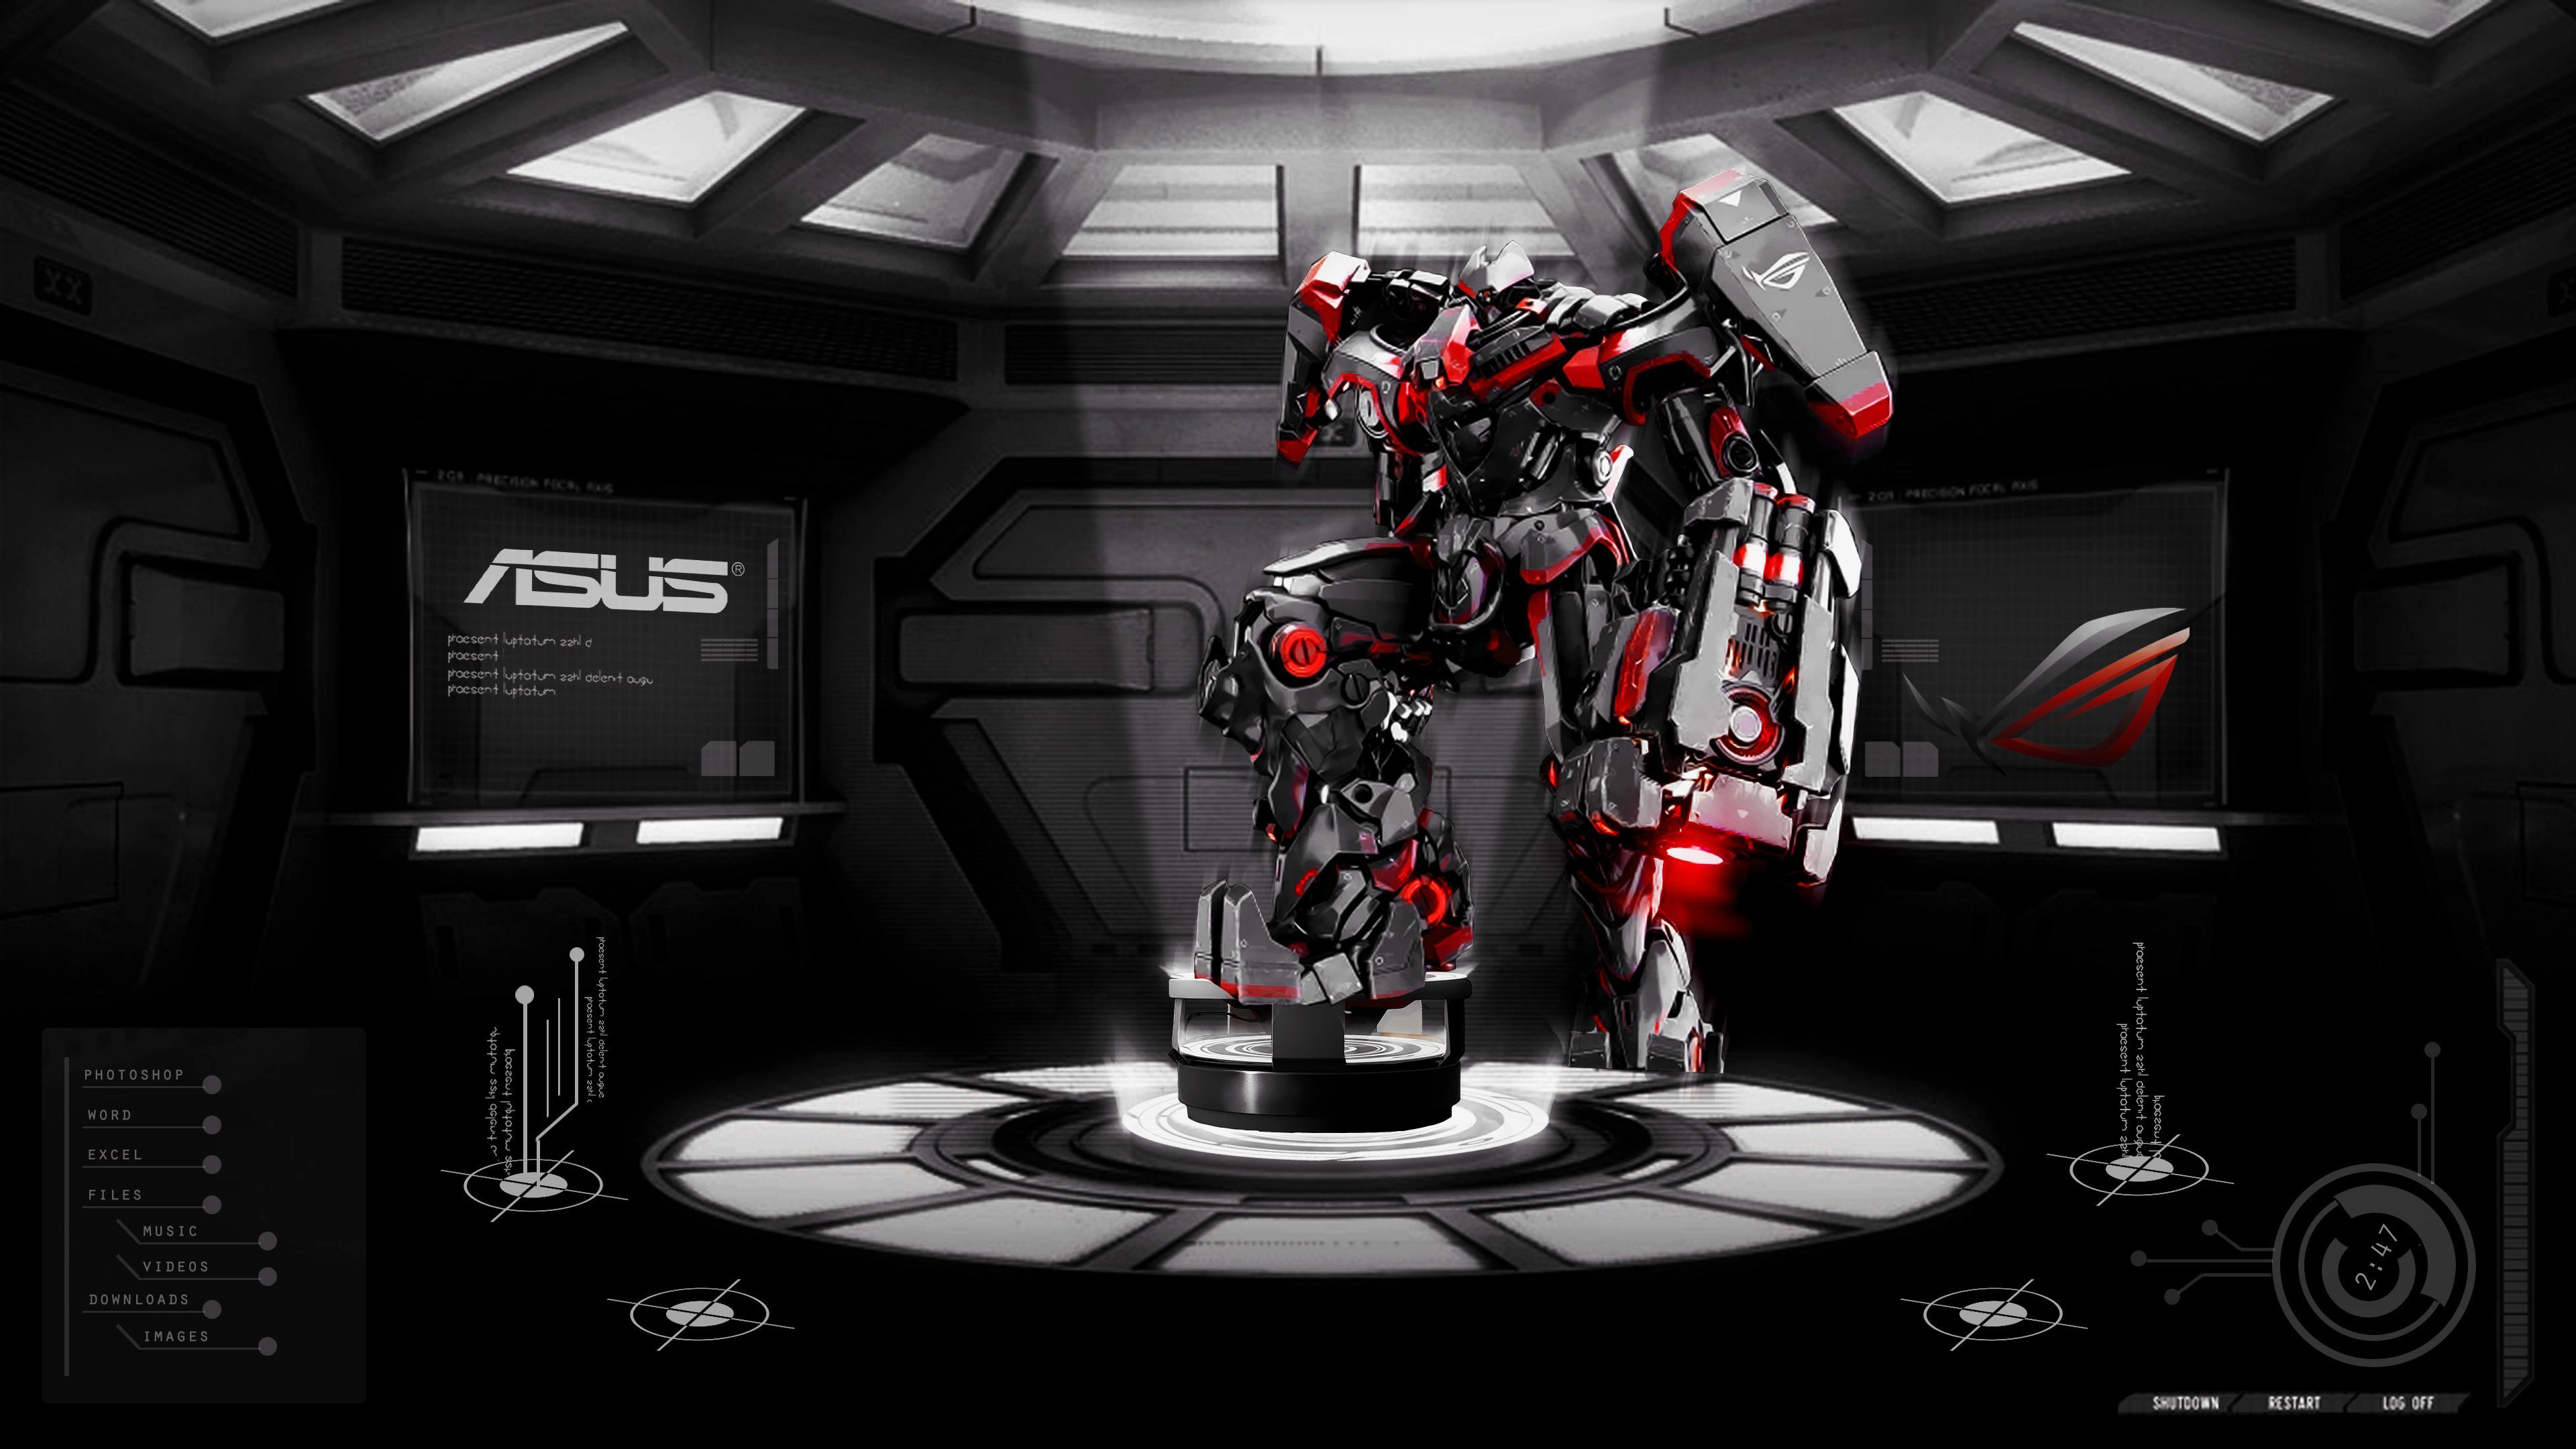 3840x2160 Win An ASUS PB287Q Monitor: 2014 4K UHD Wallpaper Competition ...